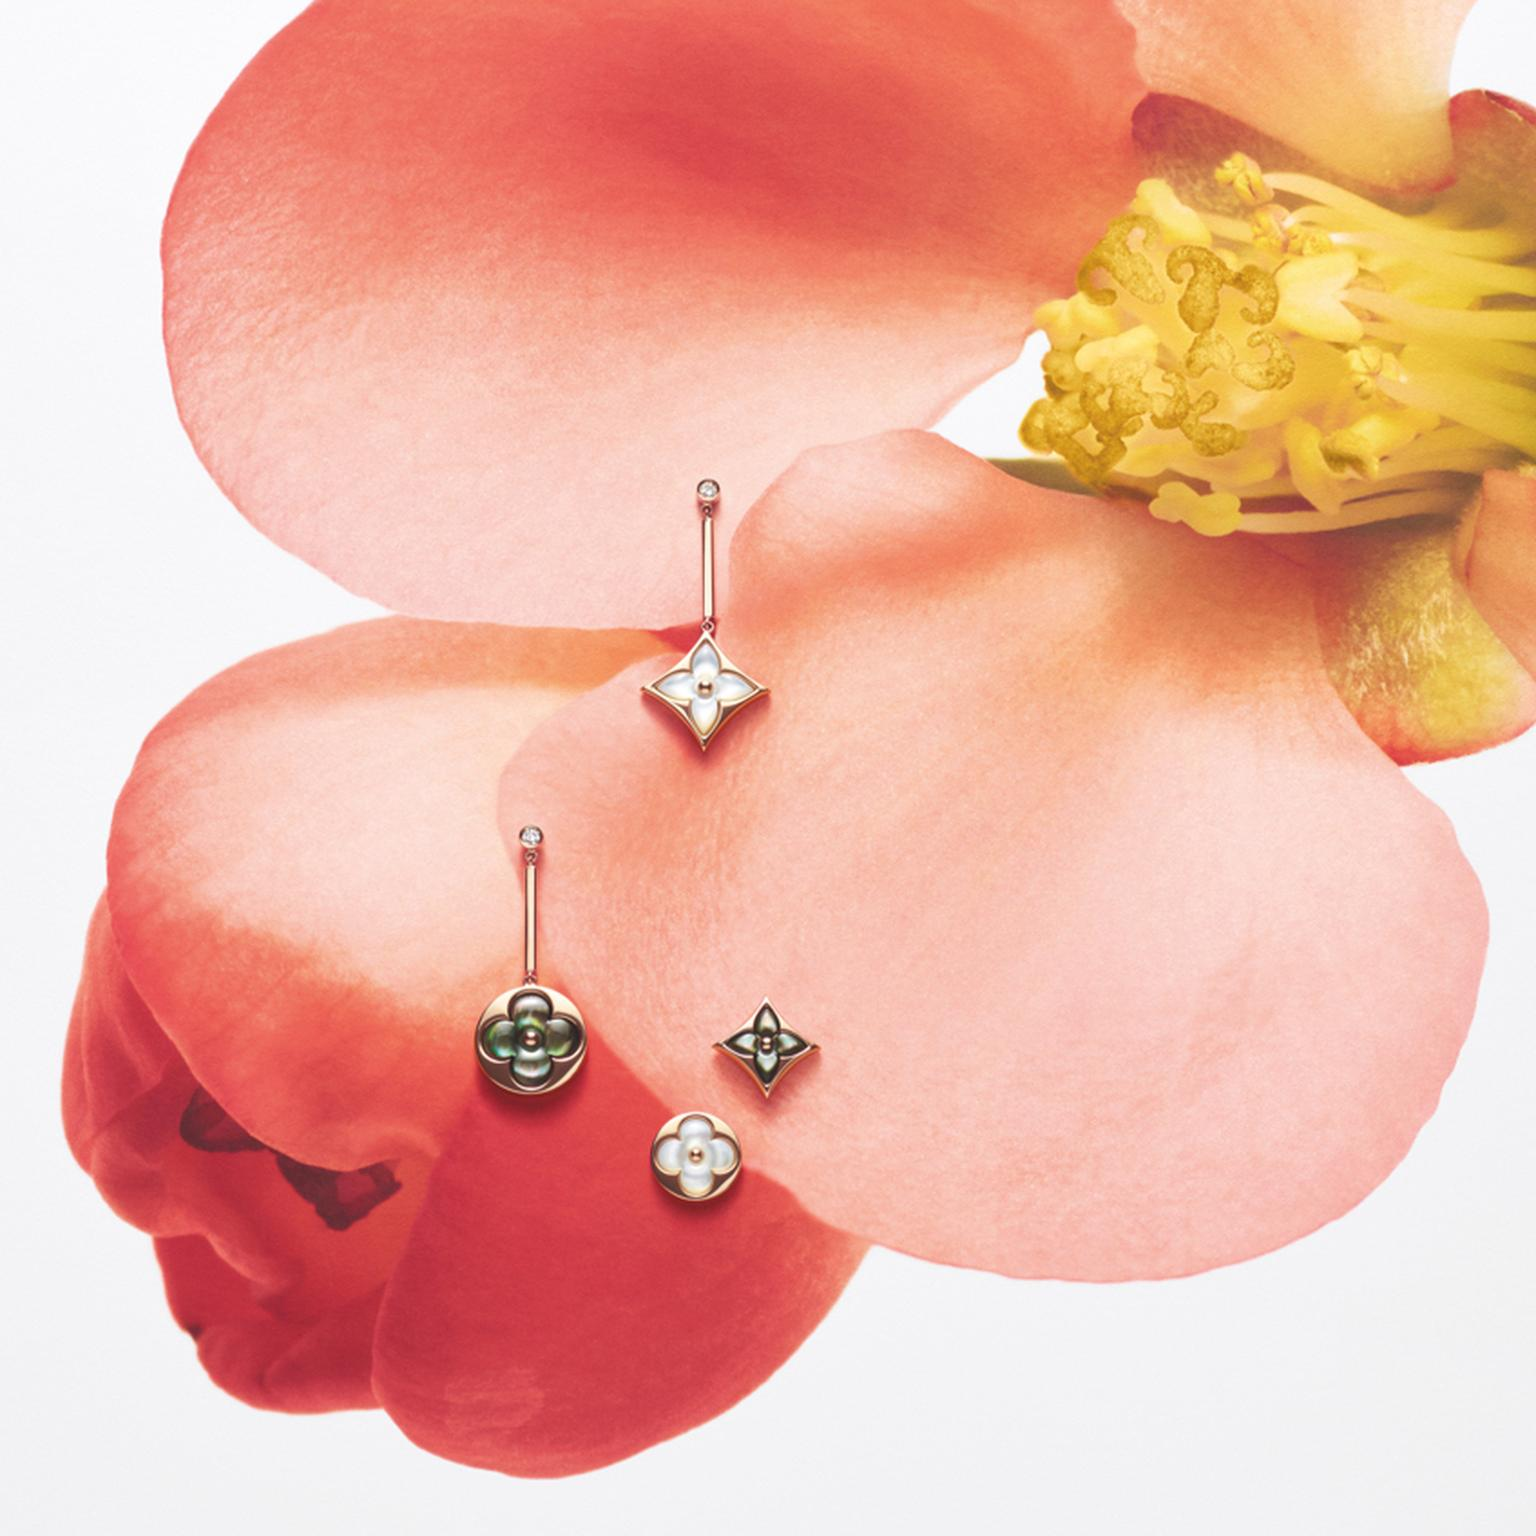 Louis Vuitton Blossom mismatched earrings